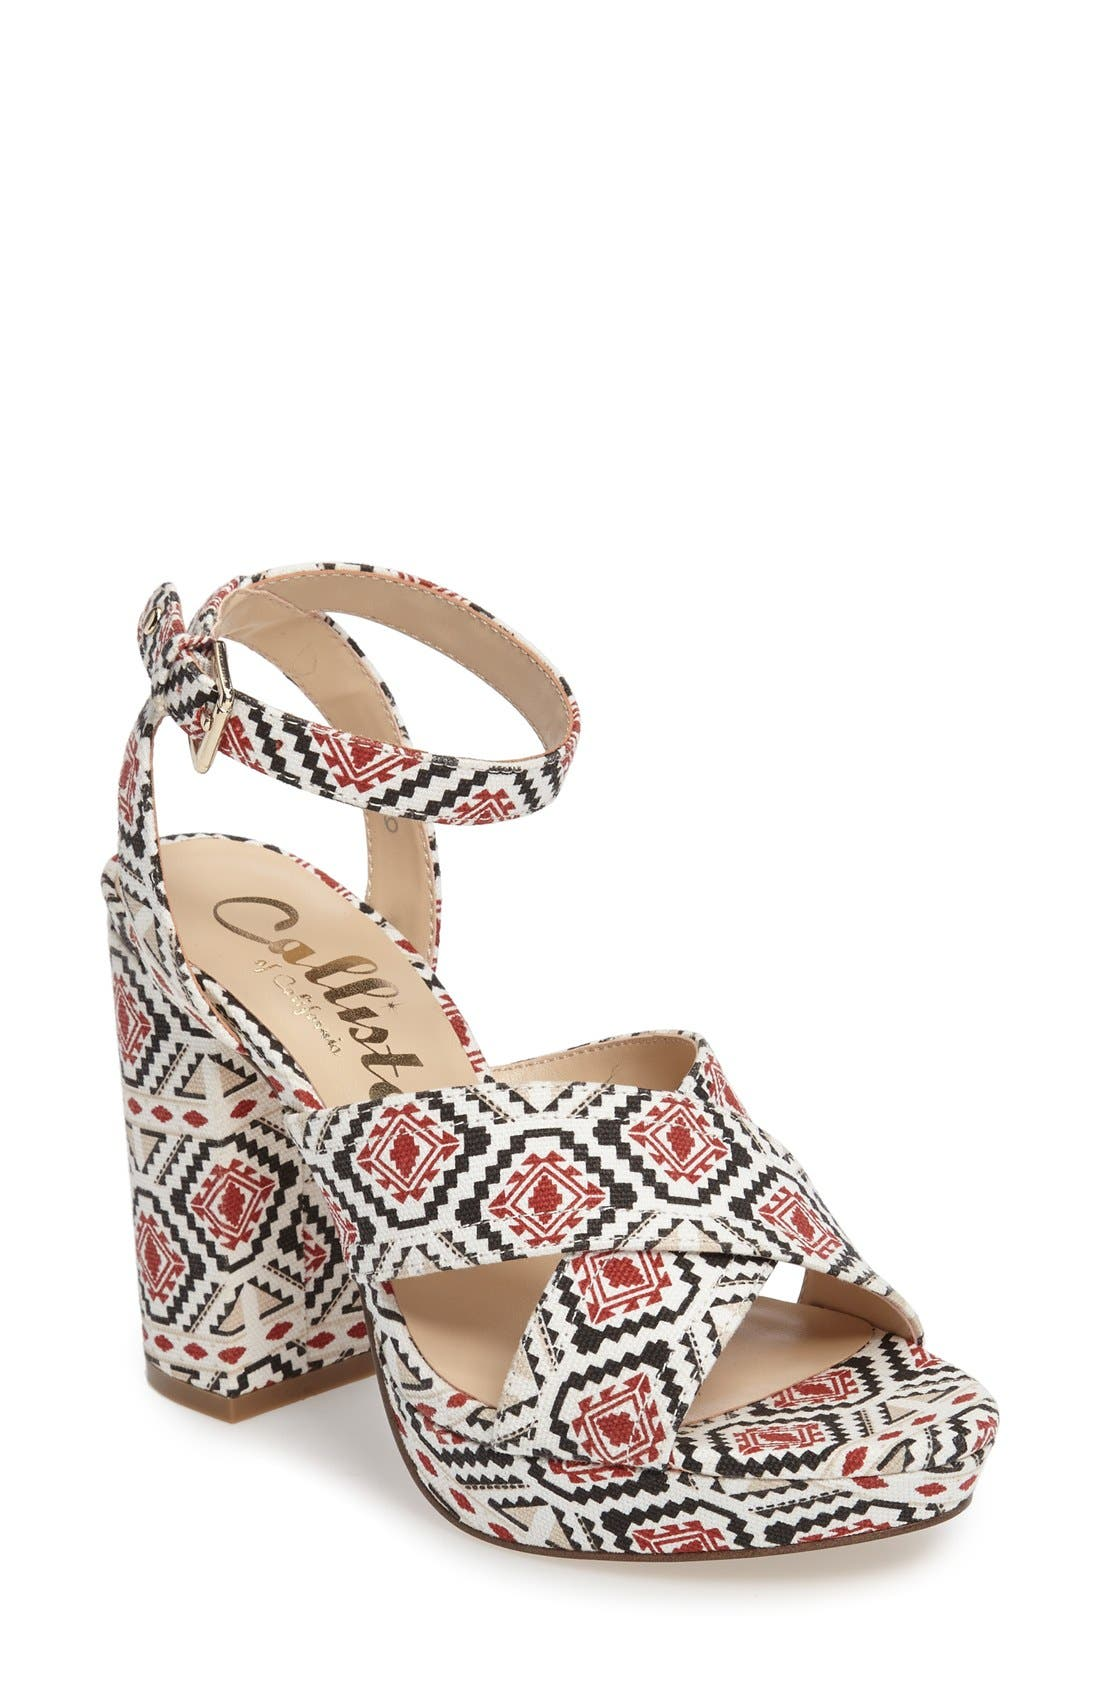 Windye Platform Ankle Strap Sandal,                             Main thumbnail 1, color,                             Tribal Fabric